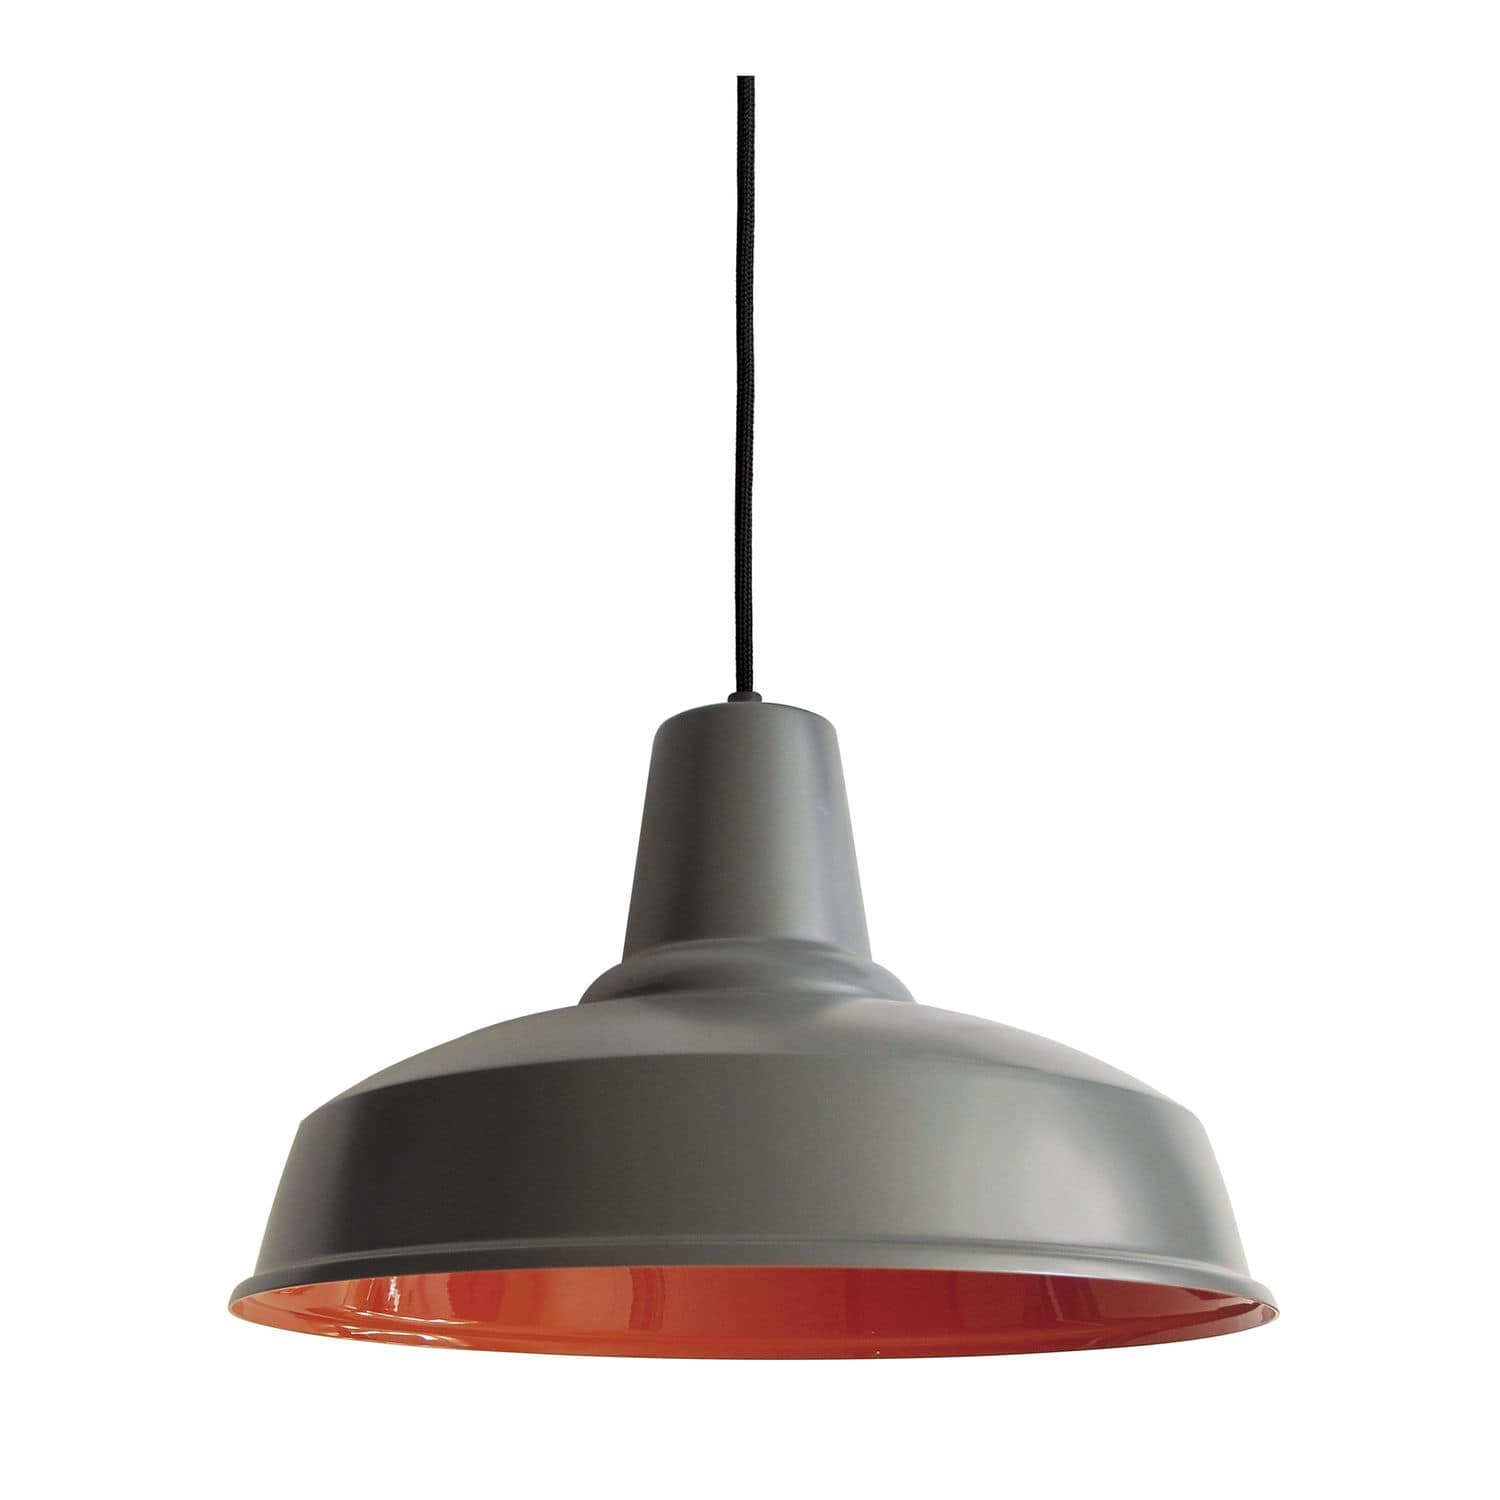 dimmable home jehrbo prod industrial pendant aluminum pandulera product by style sune lamp eleanor